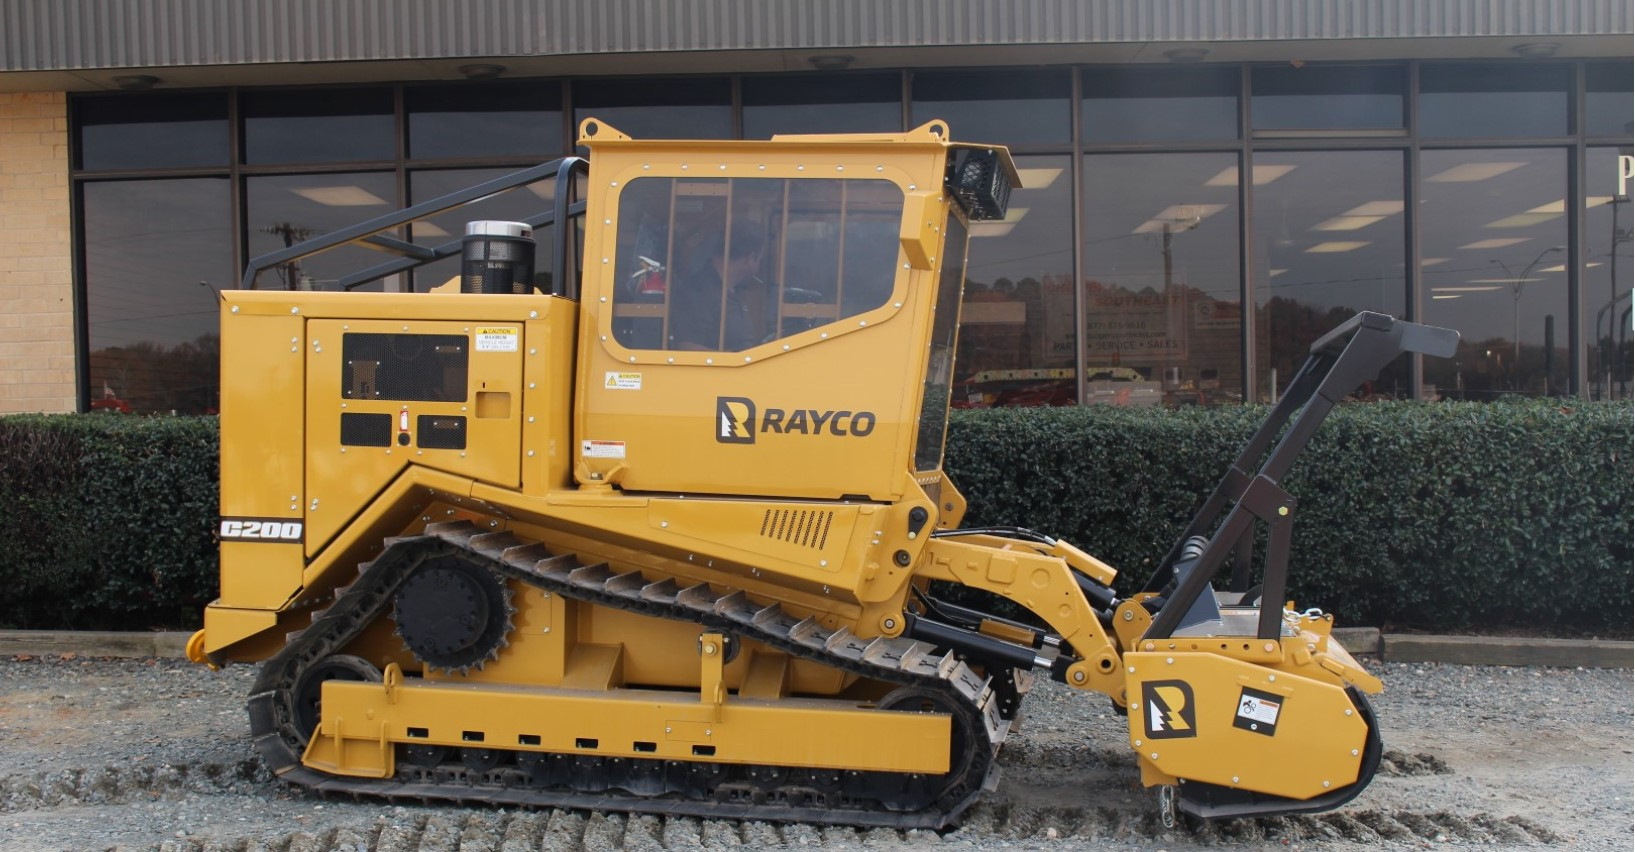 New 2018 Rayco C200 Forestry Mulcher in Charlotte, NC